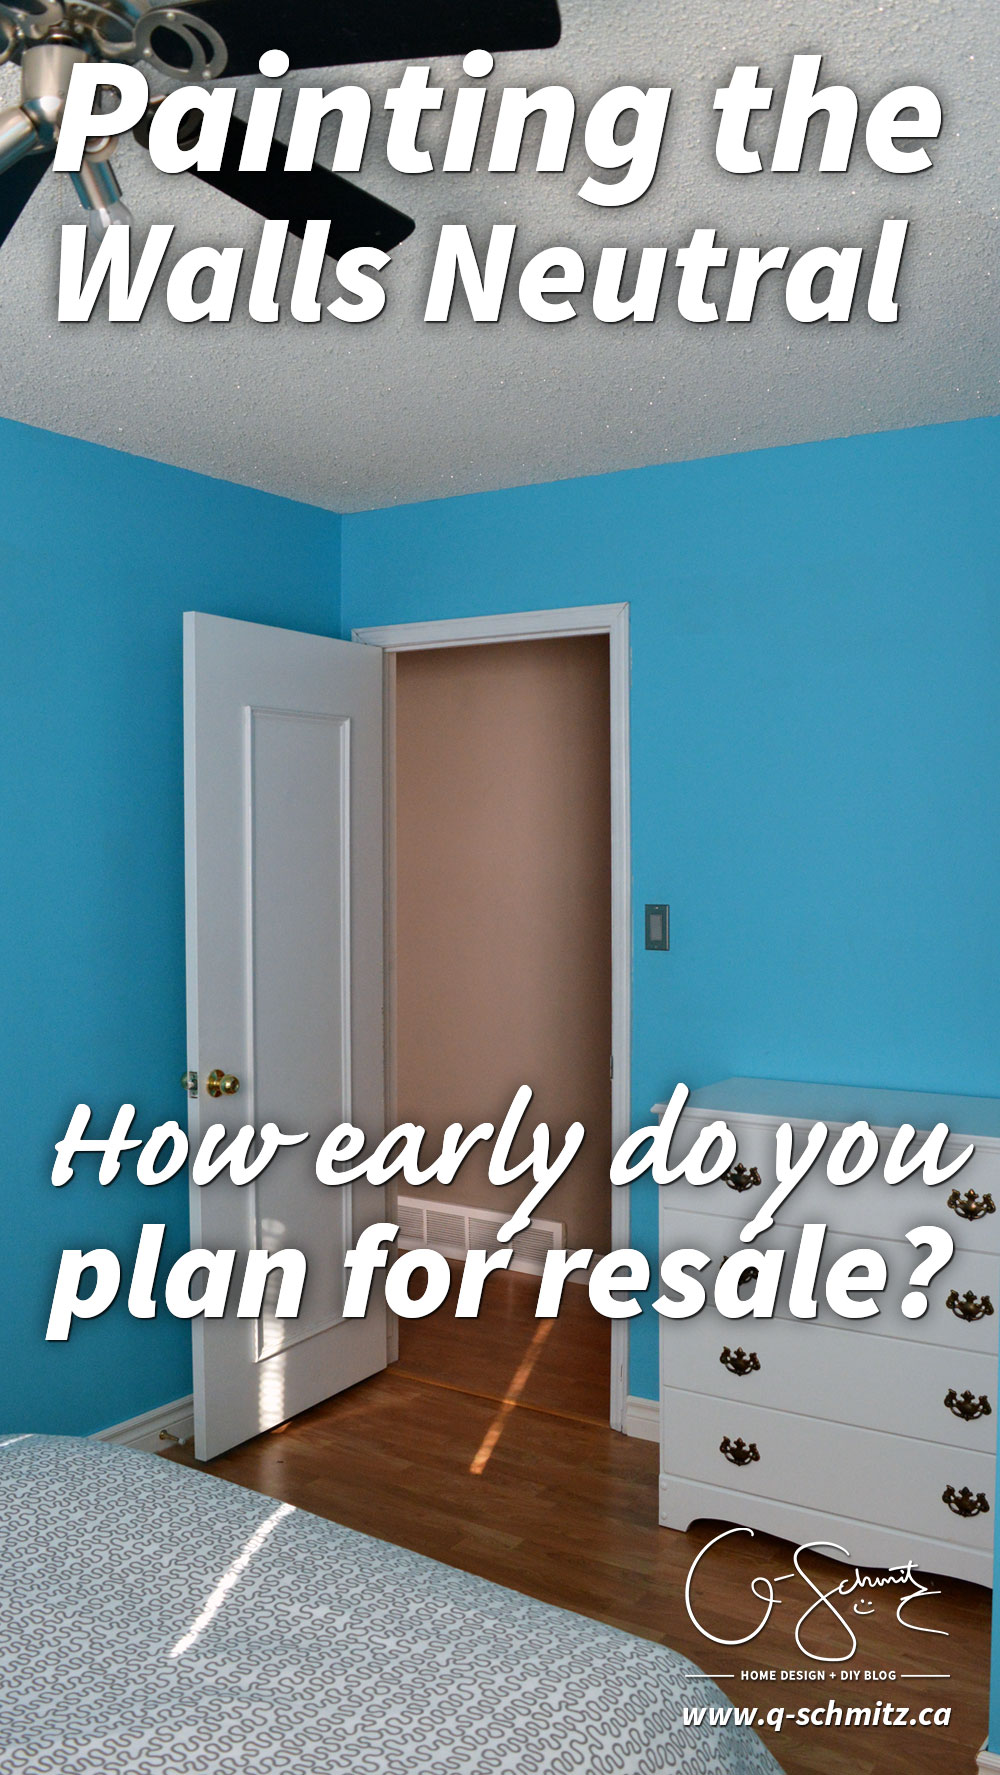 Thinking of selling your house and have some bright paint or custom design choices that might not appeal to all buyers? How early do you plan for resale?